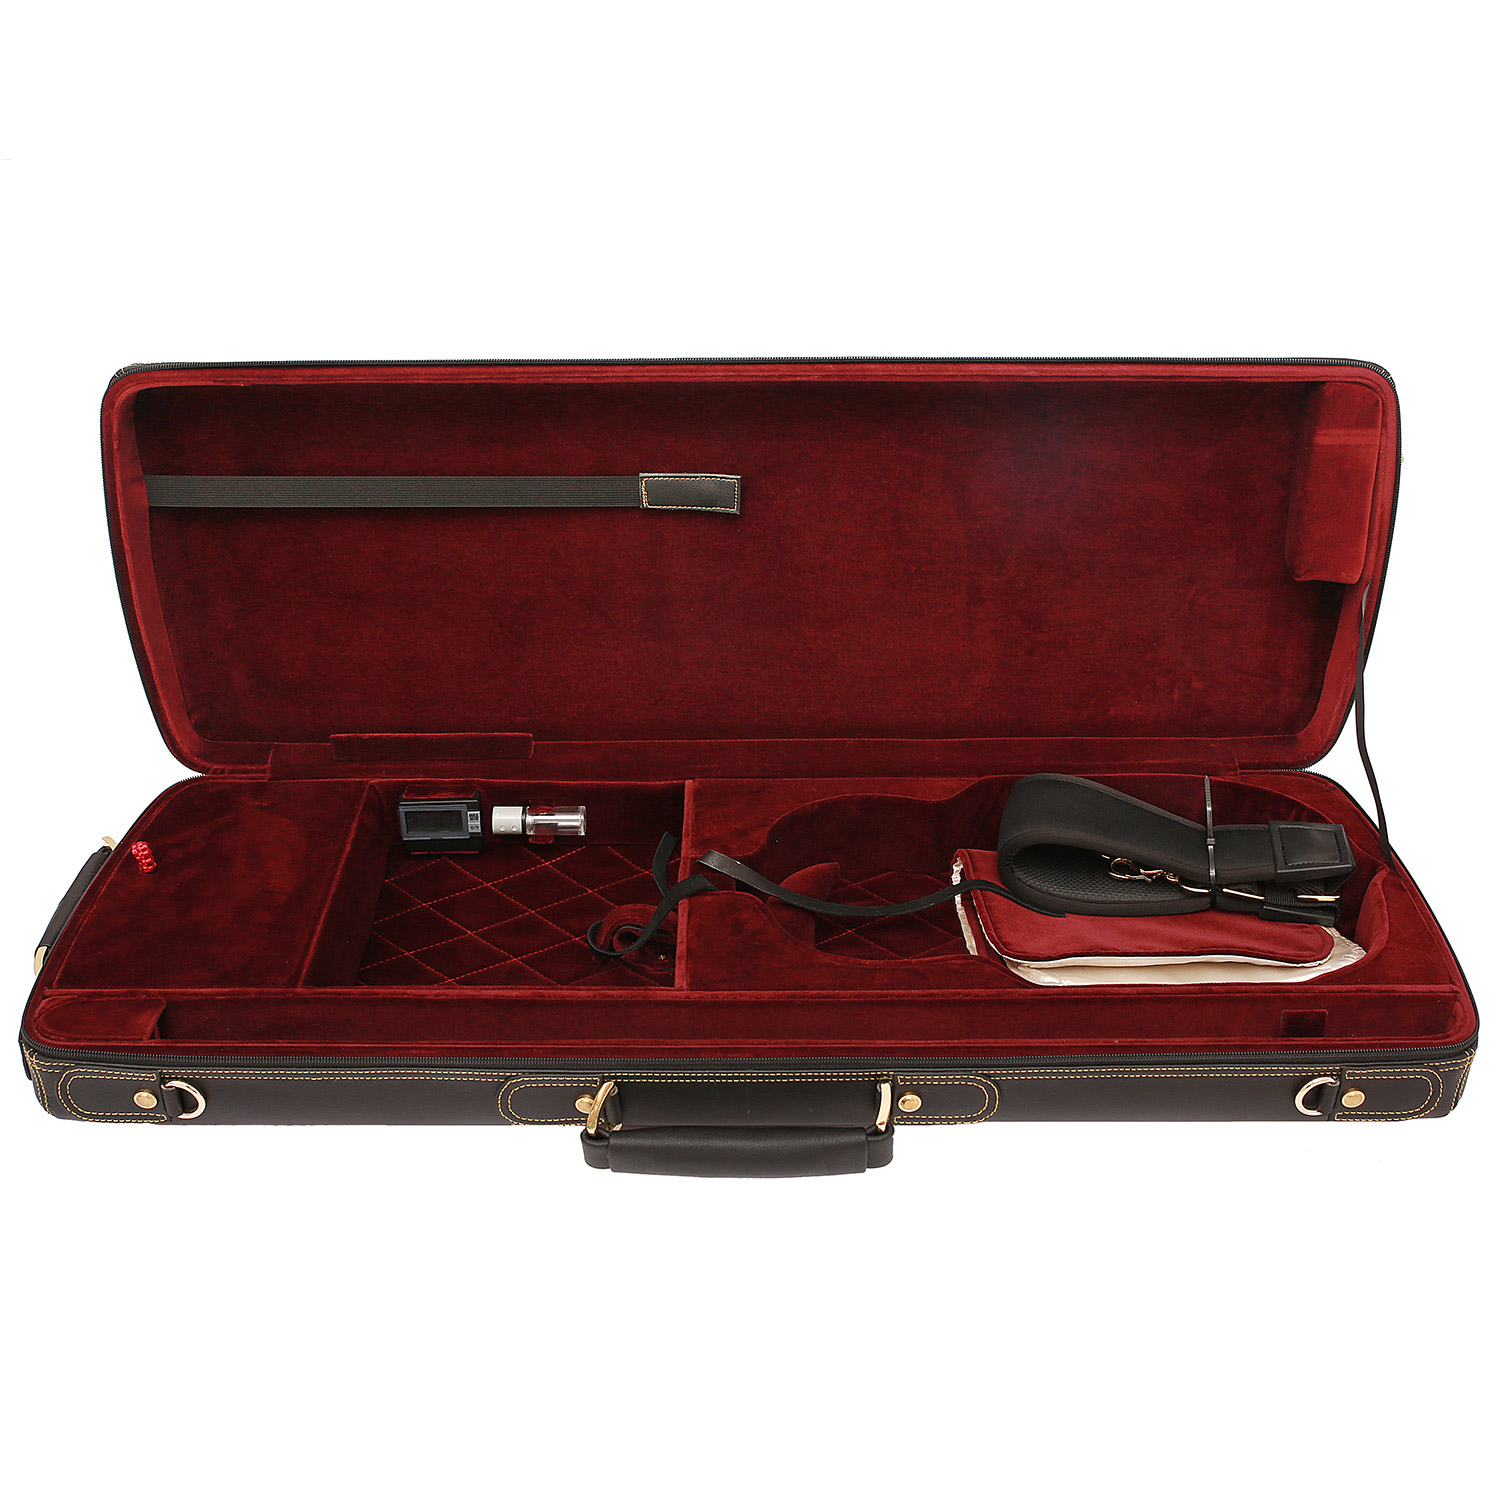 CC Case for violin Bordeaux red